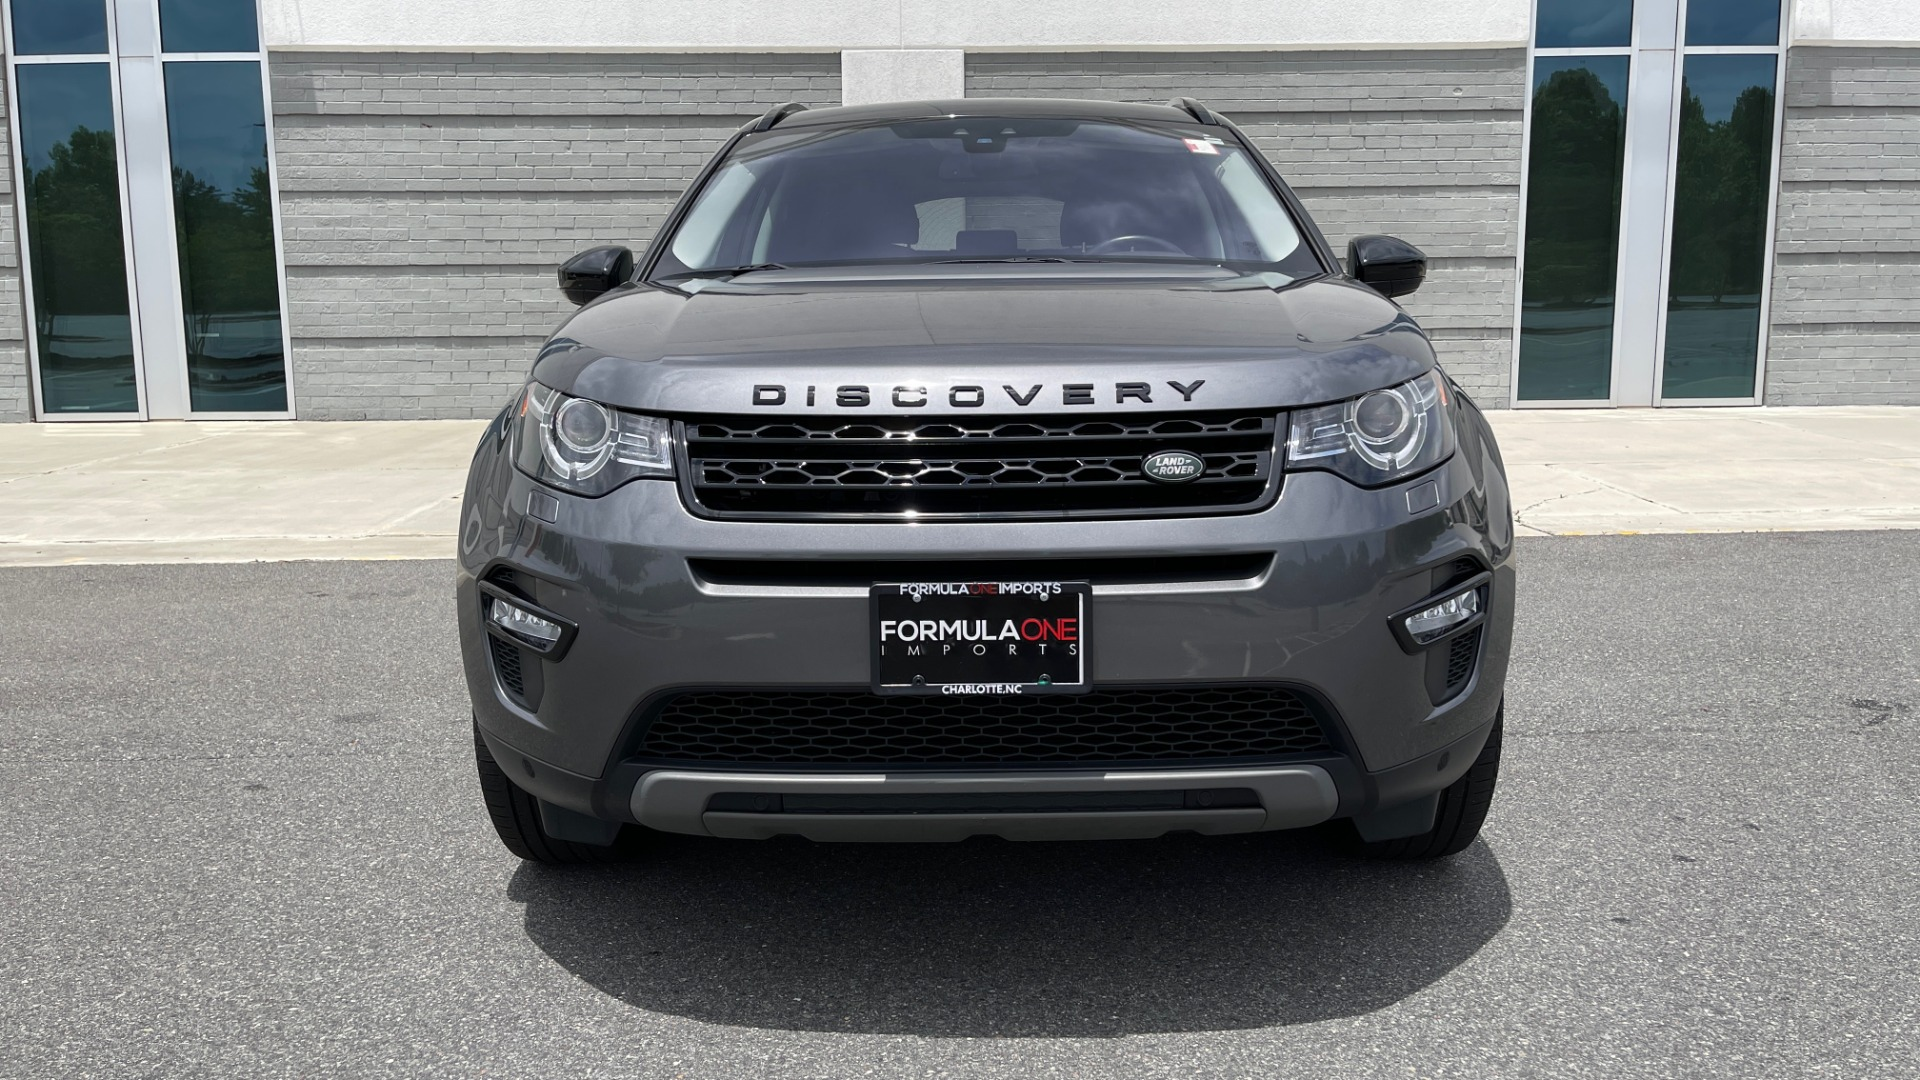 Used 2018 Land Rover DISCOVERY SPORT HSE 4WD / NAV / PANO-ROOF / MERIDIAN SND / HTD STS / LANE ASST / REARVIEW for sale $34,995 at Formula Imports in Charlotte NC 28227 10